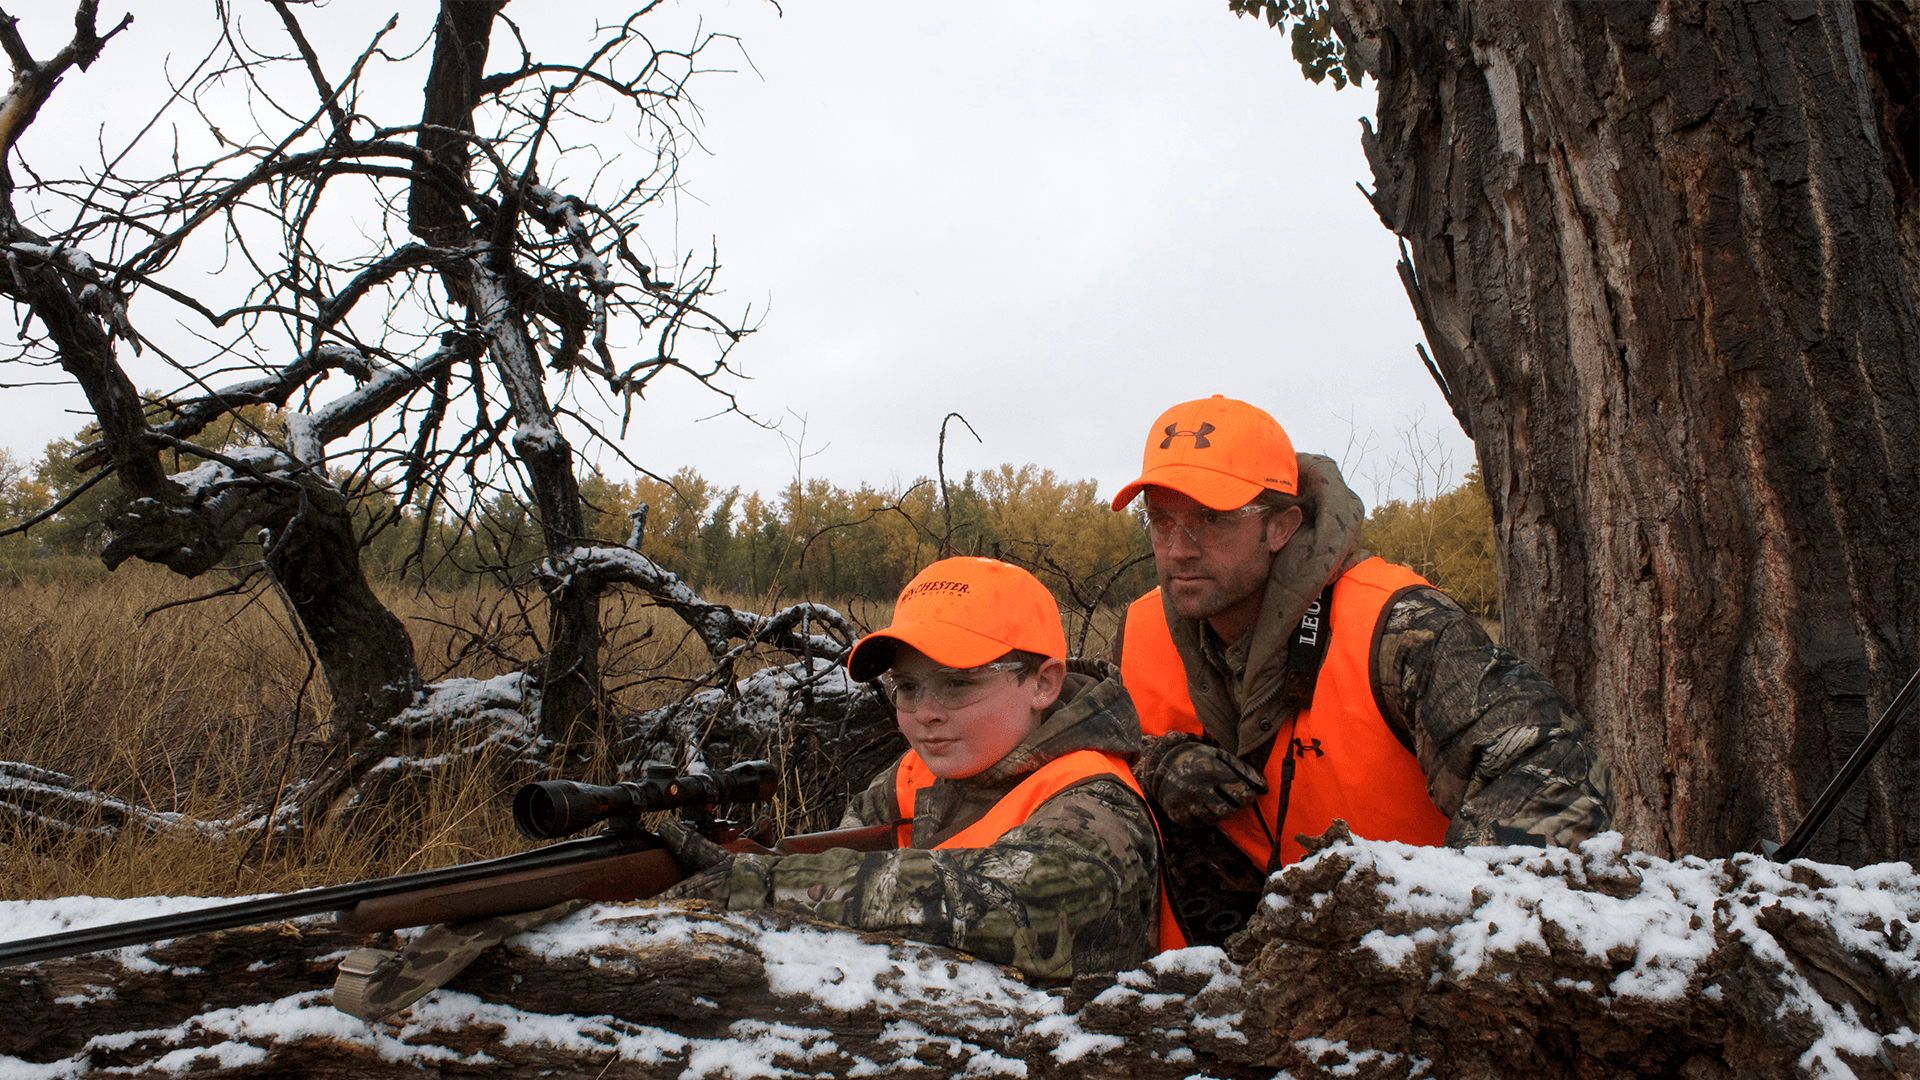 REASONS TO TEACH KIDS ABOUT HUNTING